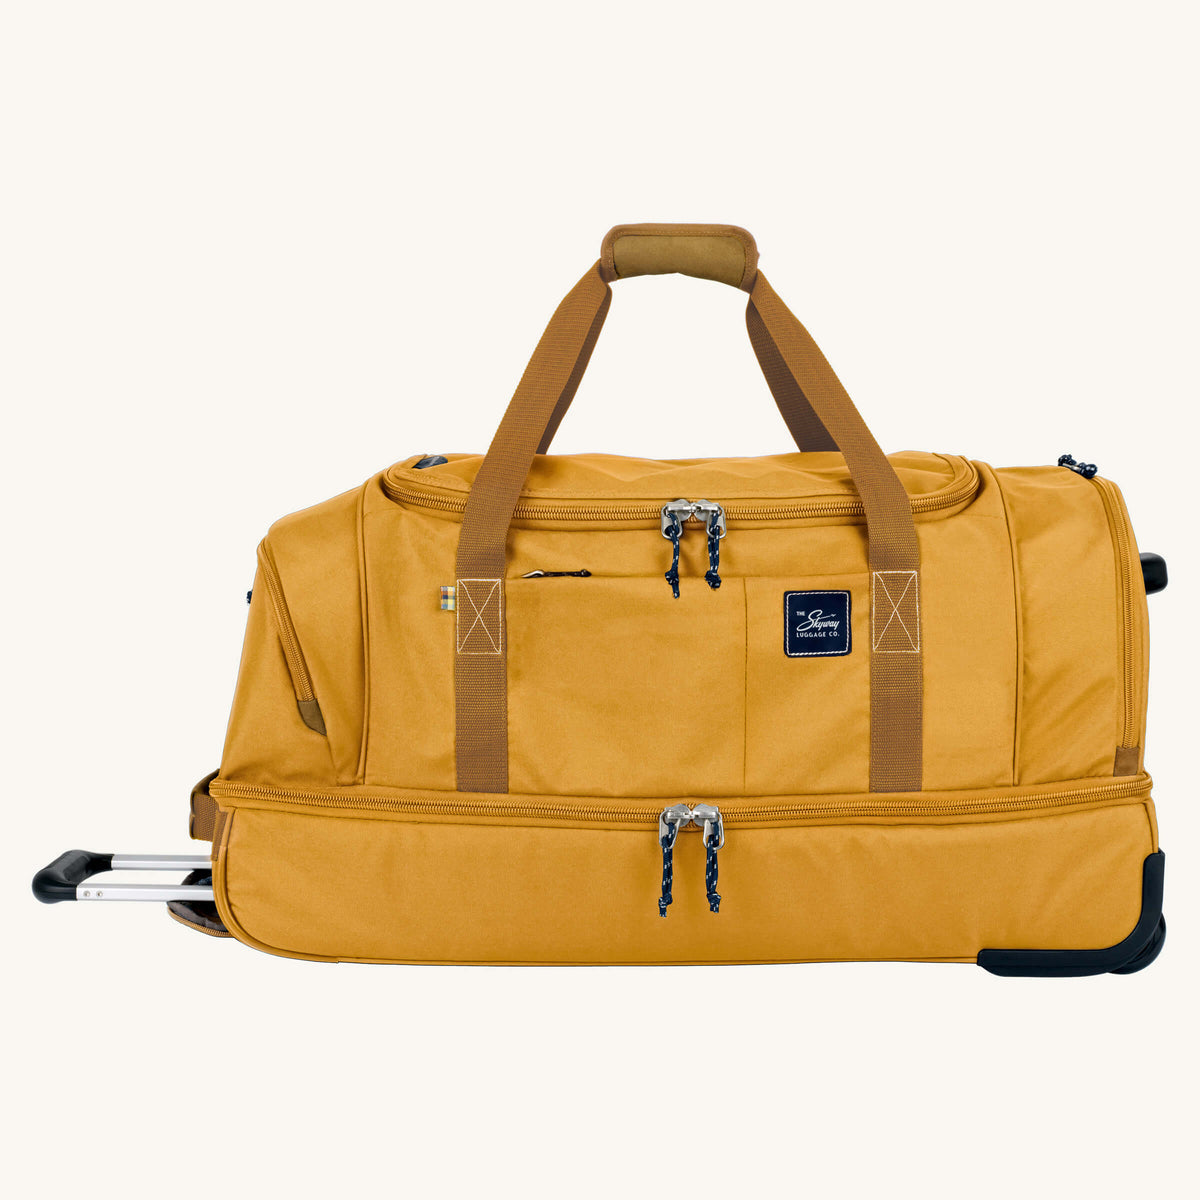 0412ac3e4 Whidbey Large Rolling Duffel – Skyway Luggage